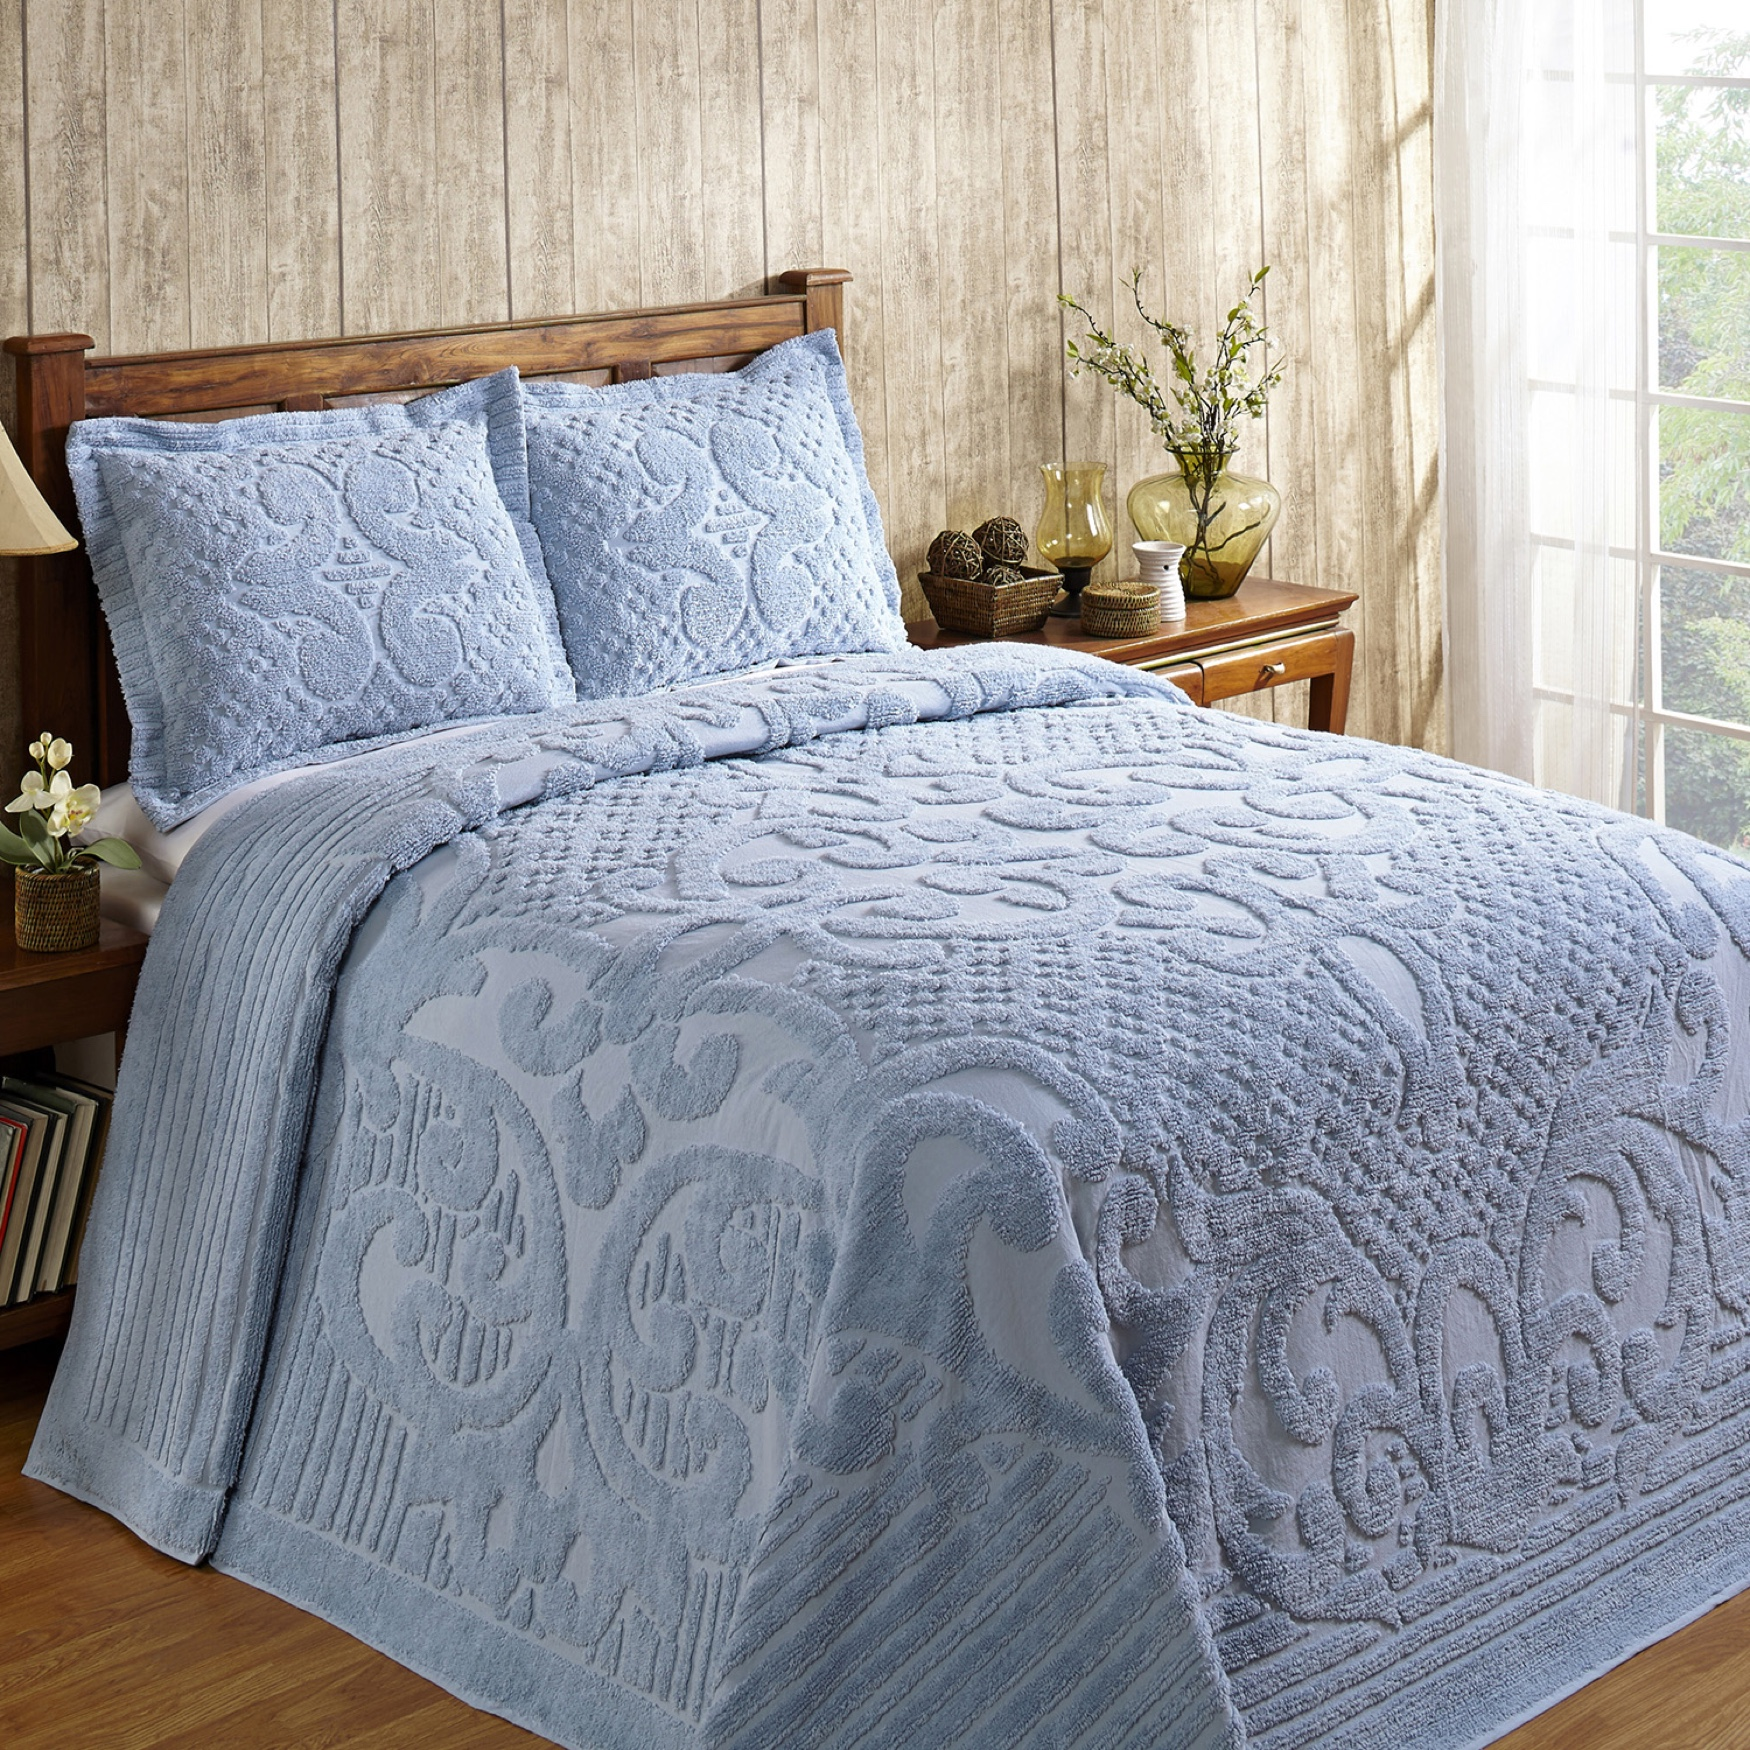 Ashton Collection Tufted Chenille Bedspread ,